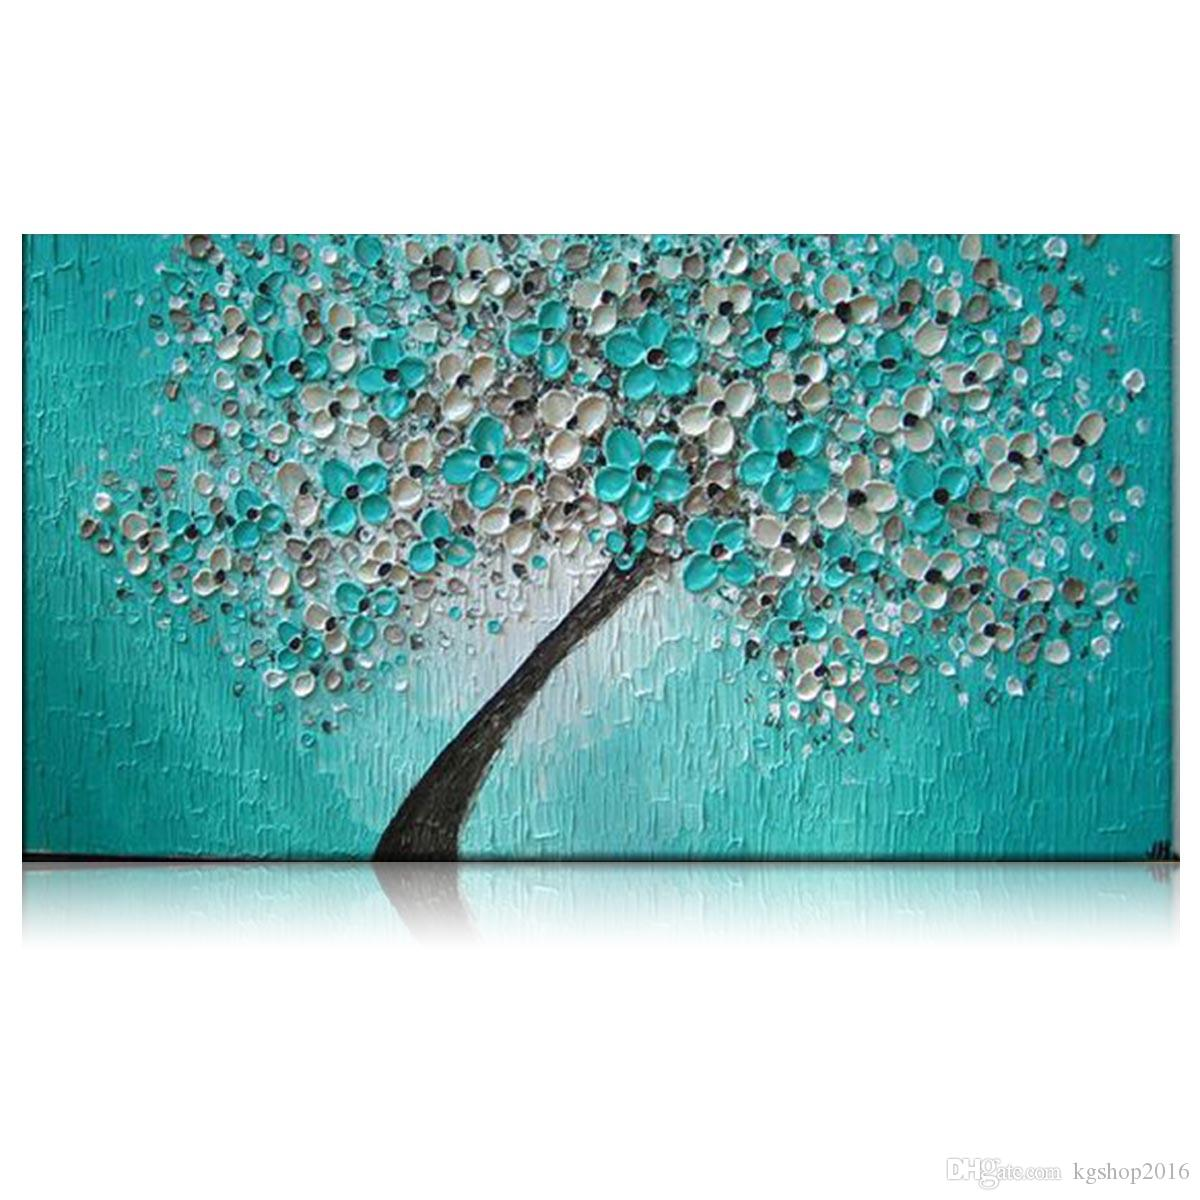 2018 kgtech thick textured teal green floral tree acrylic